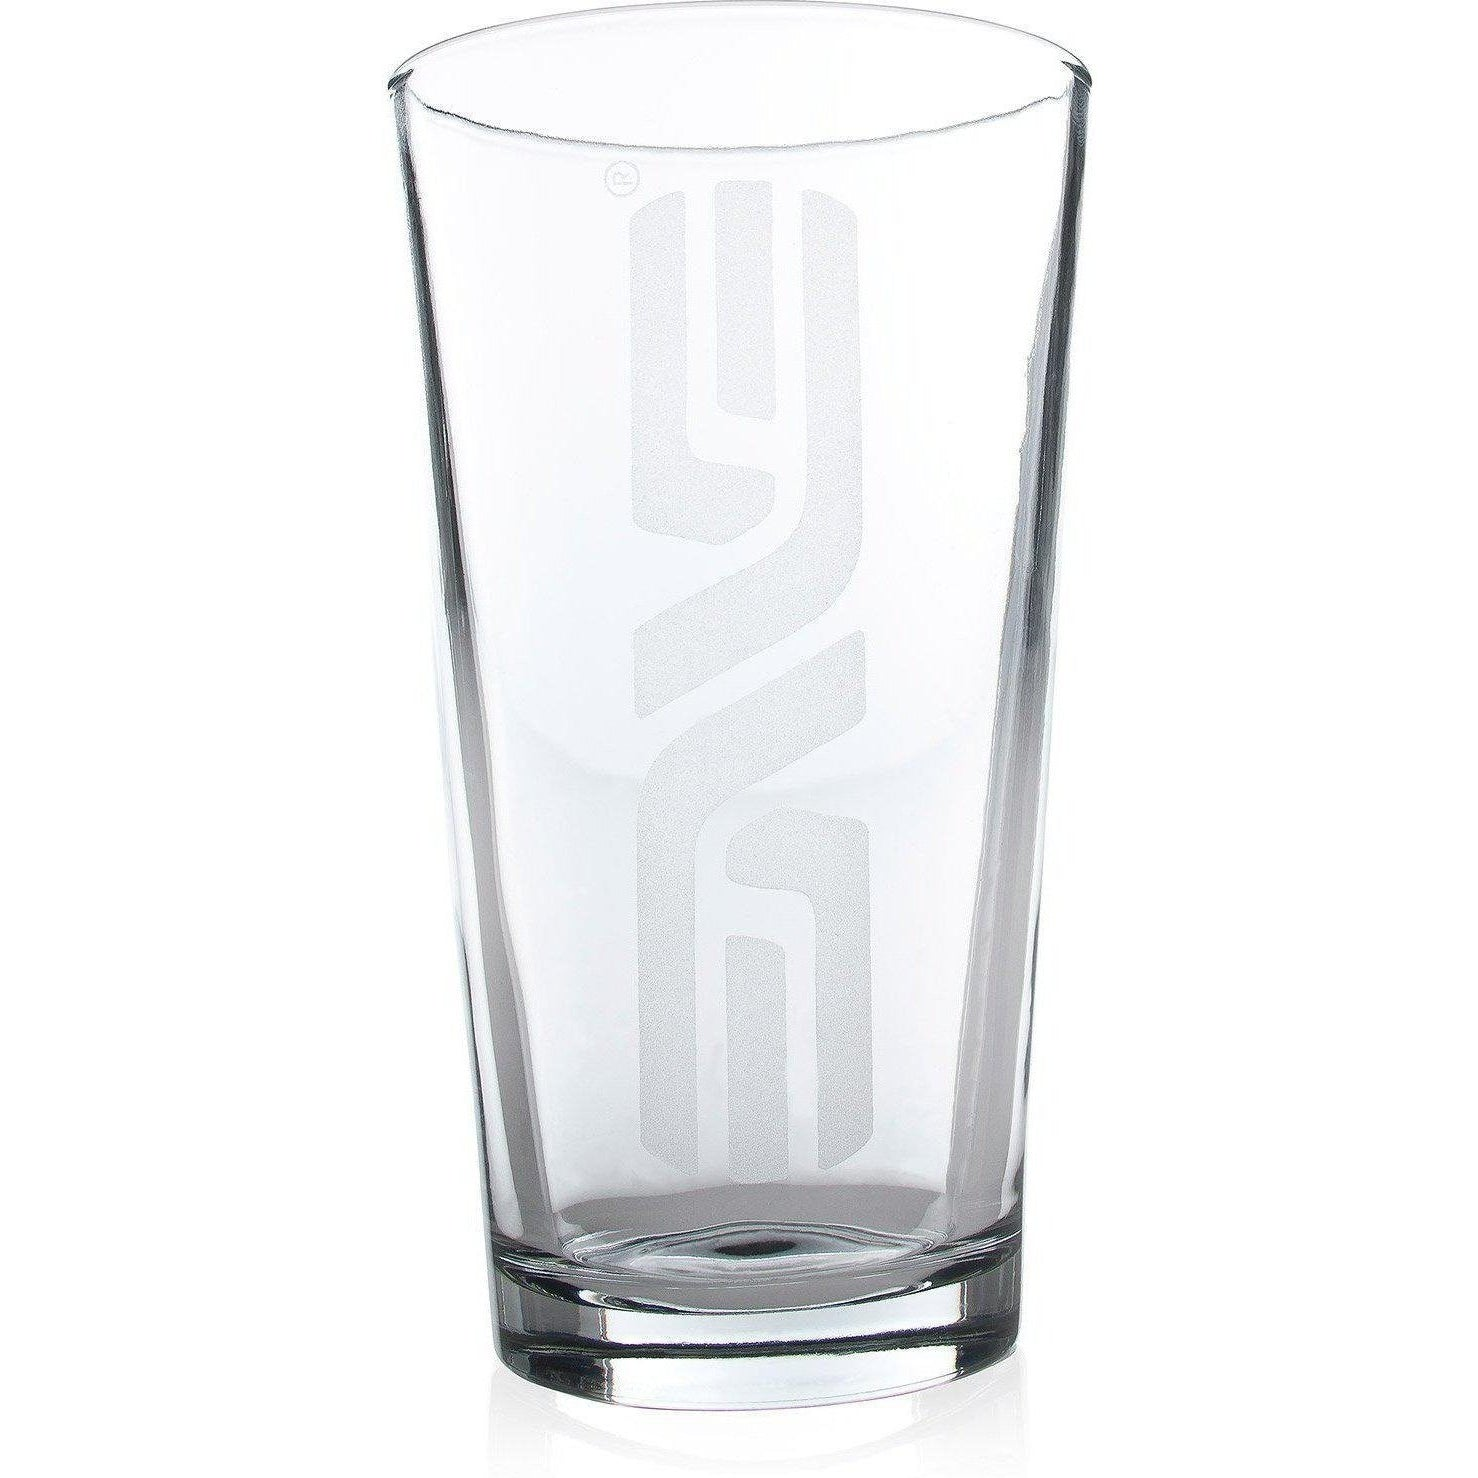 Accessories - ENVE Pint Glass 16 Oz